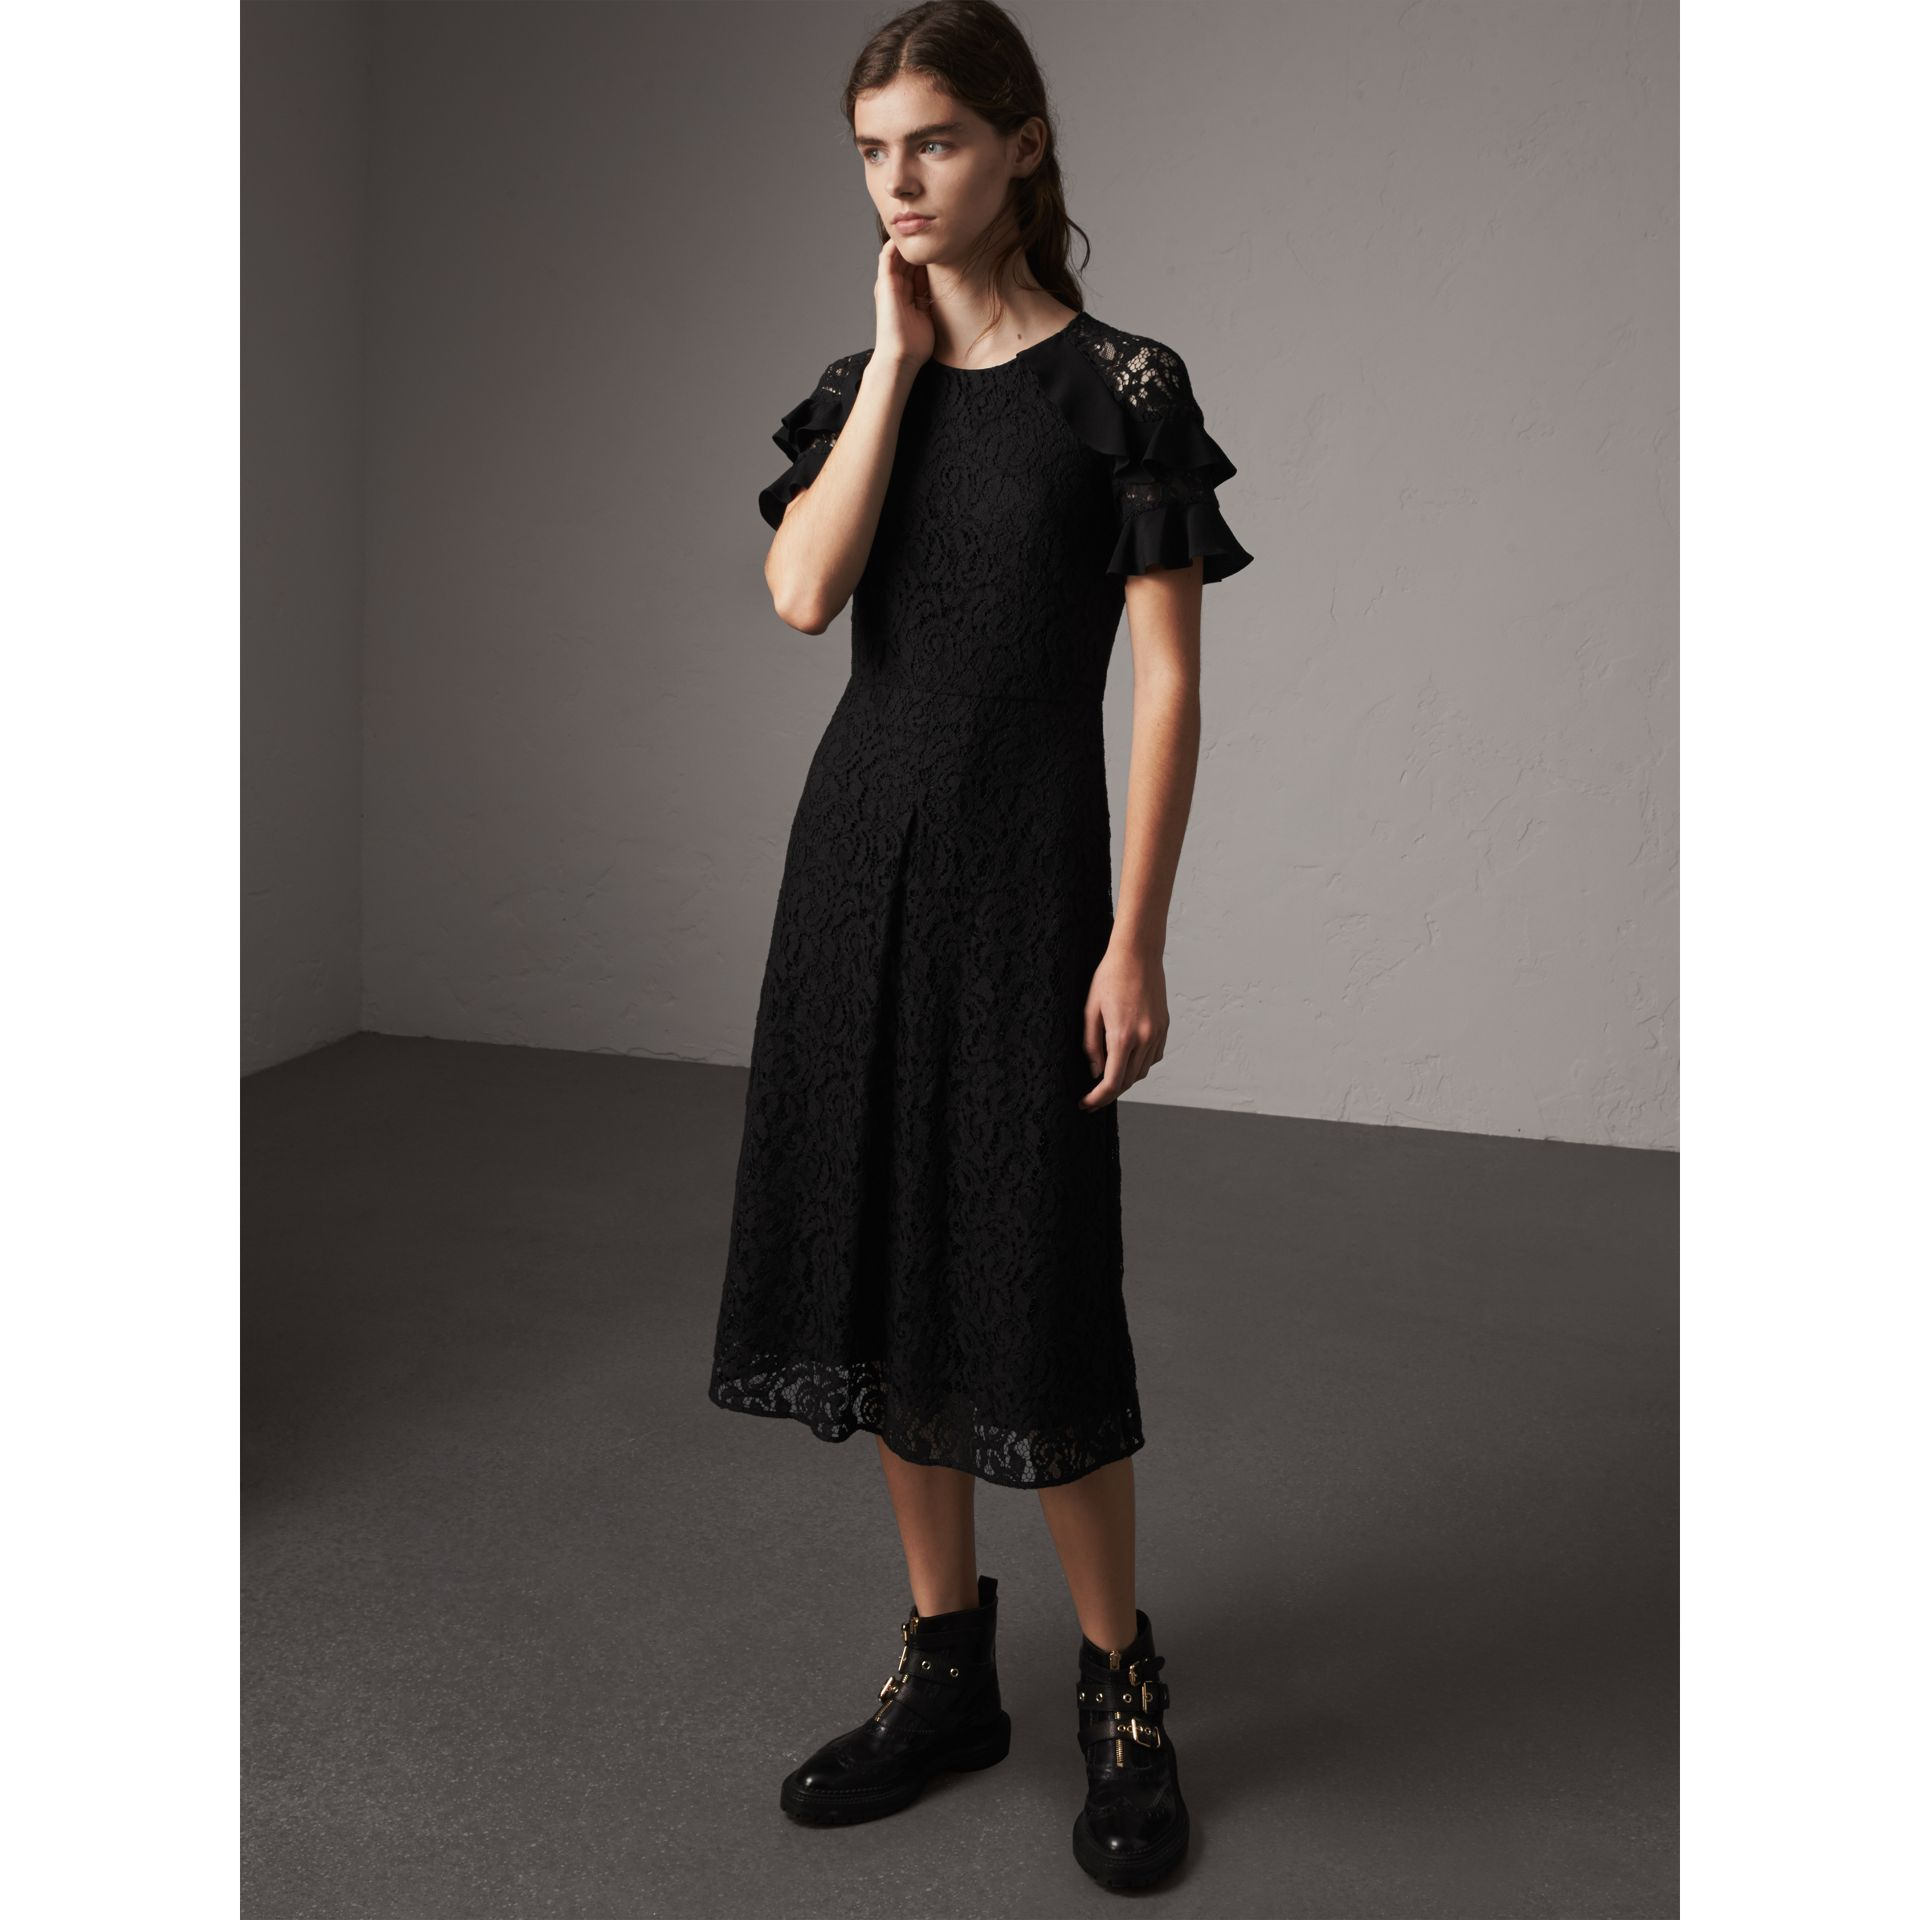 Ruffle Detail Floral Lace Dress in Black - Women | Burberry - gallery image 1